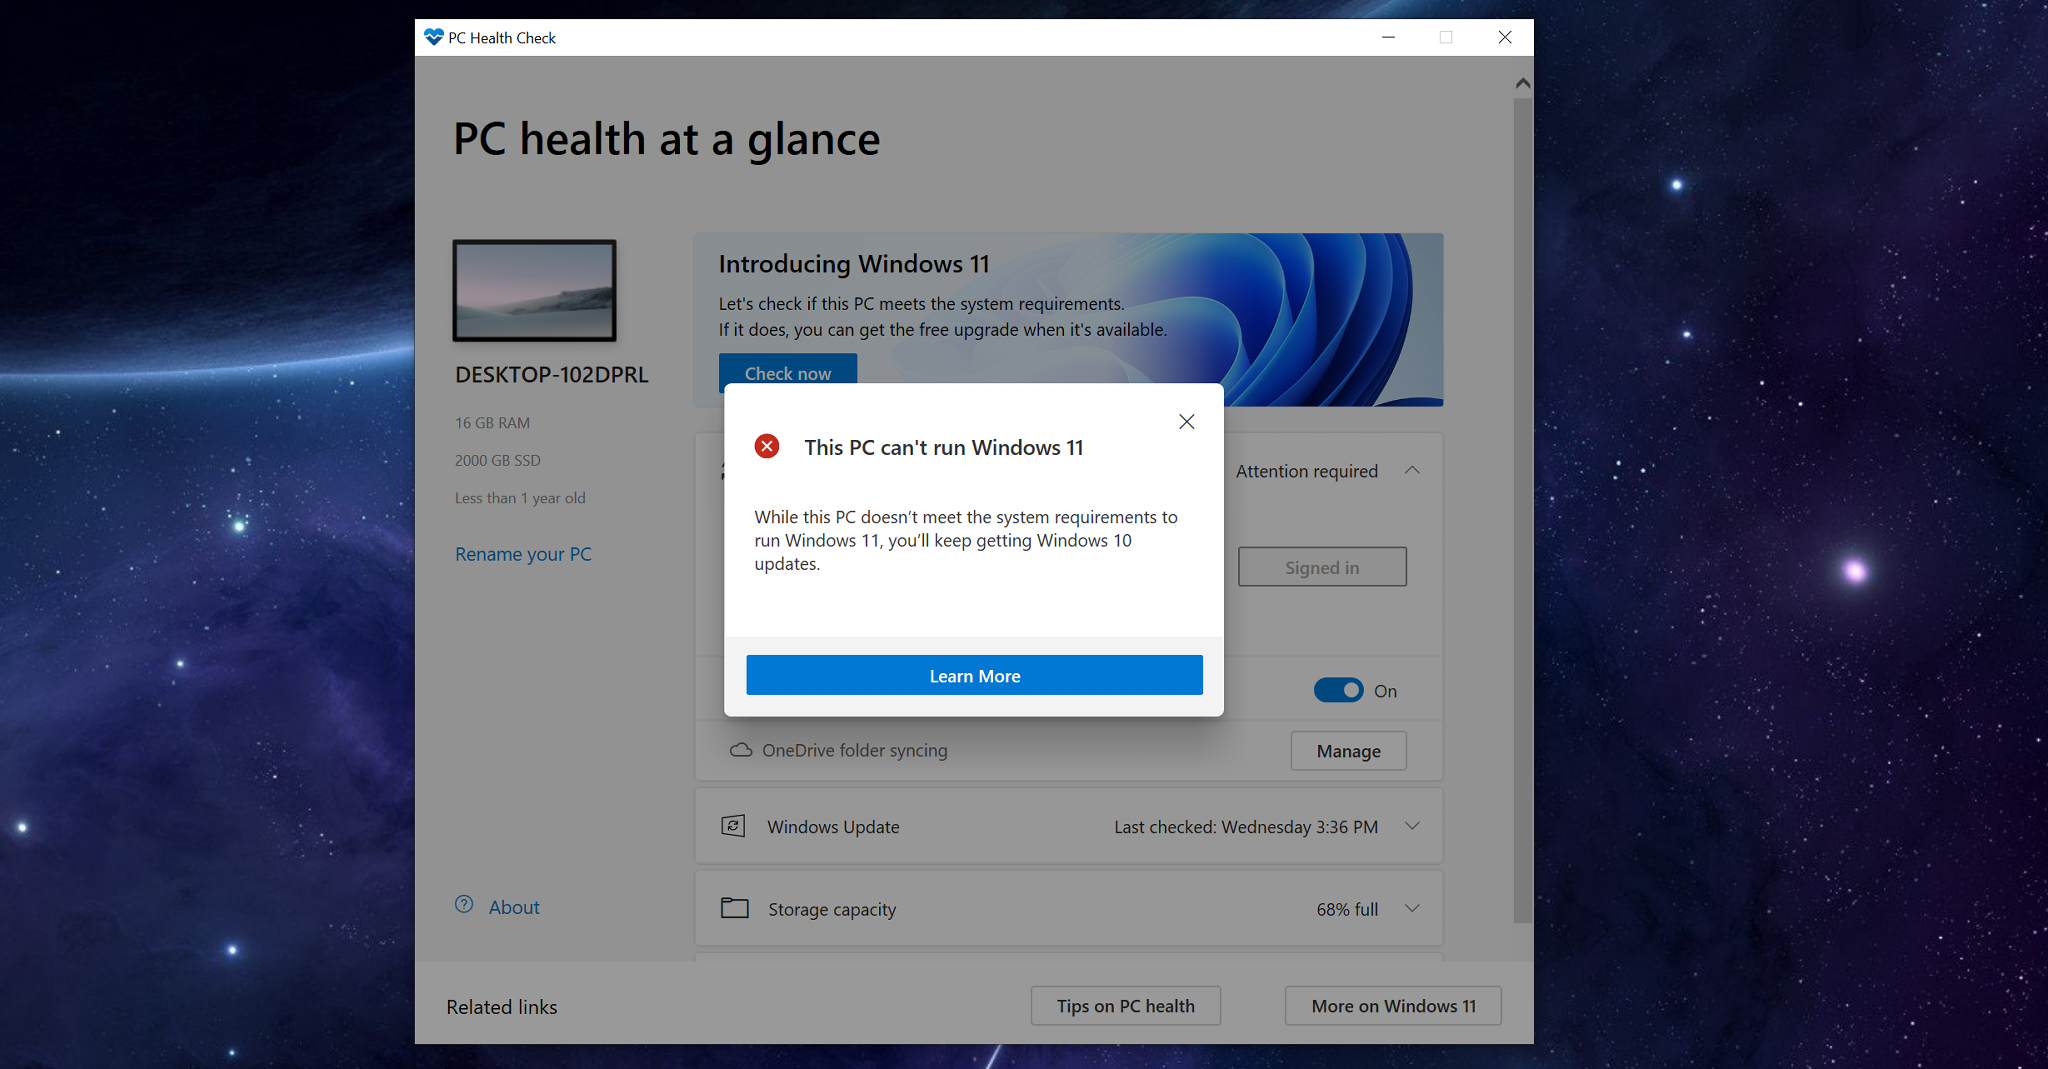 Windows 11 Will Be a Free Upgrade, But the System Requirements Are Going Up